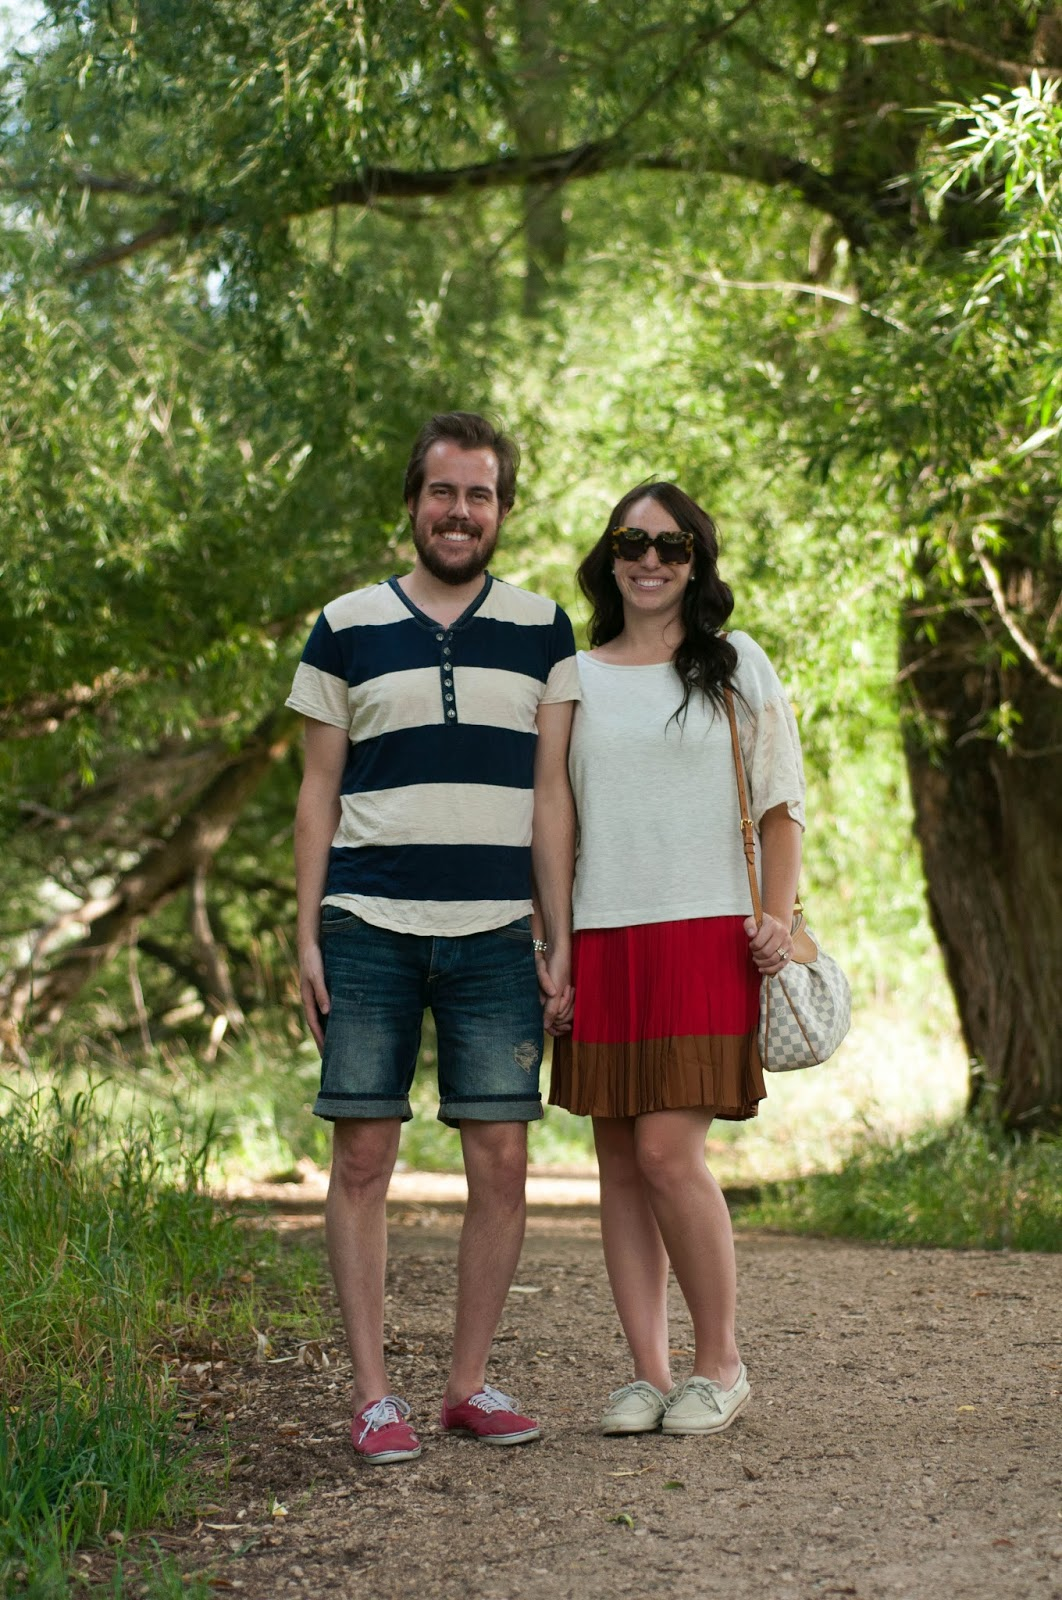 couple fashion, couples style, street style, anthropologie ootd, karen walker tortoise sunglasses, mens ootd